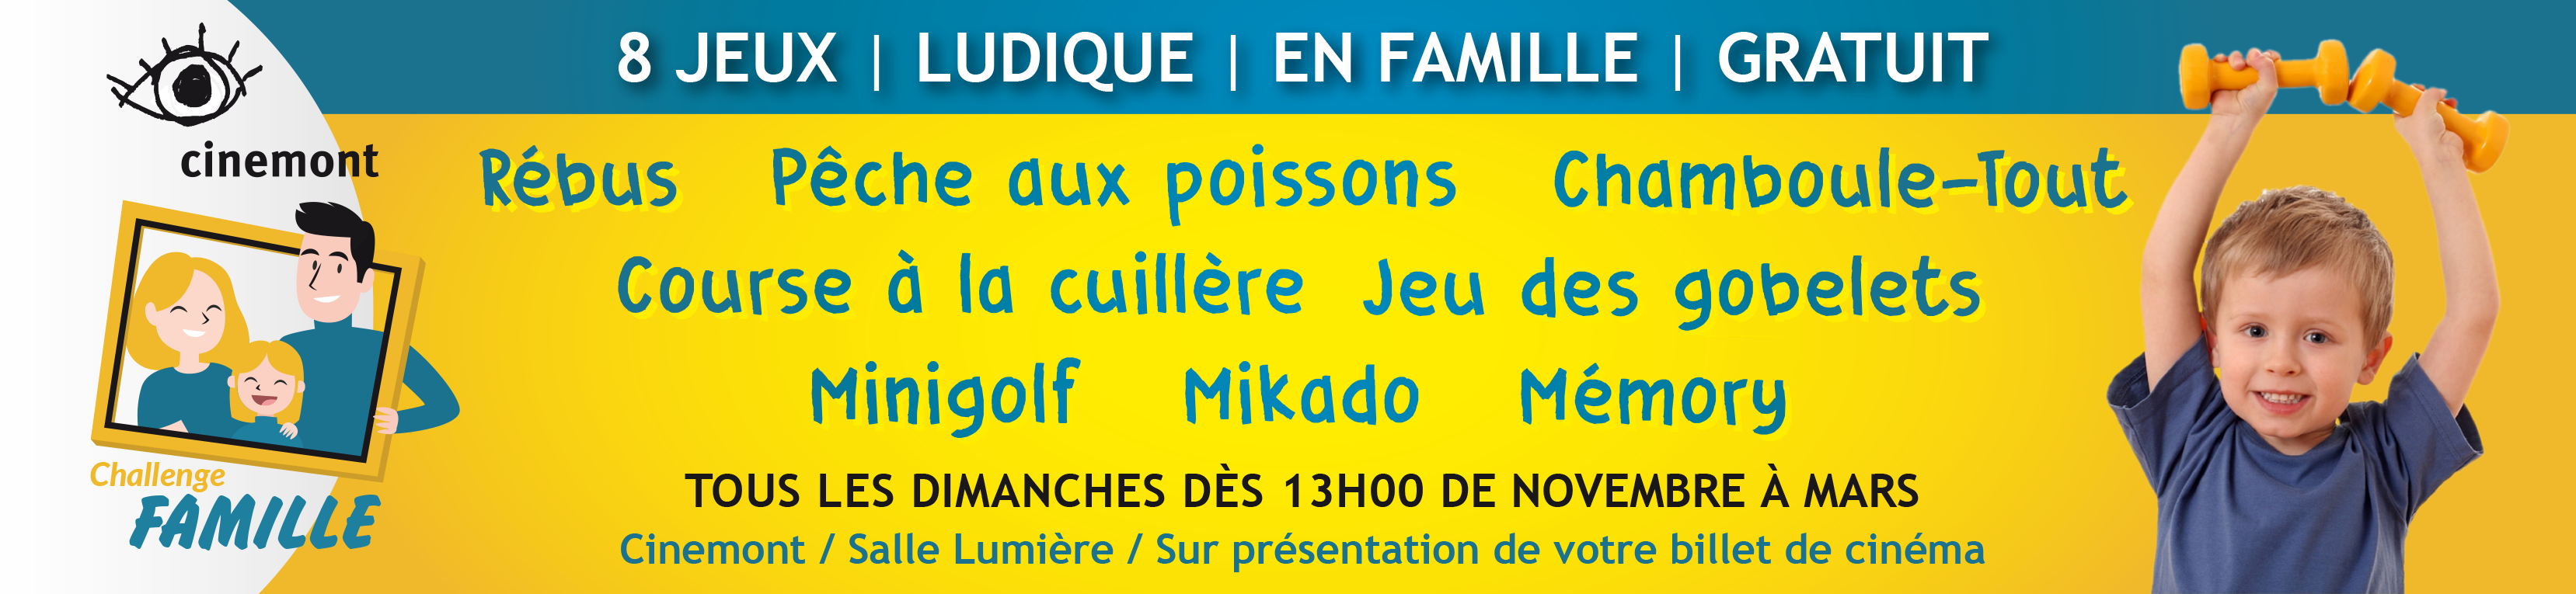 Challenge Famille DIA 1170x270 banner site internet